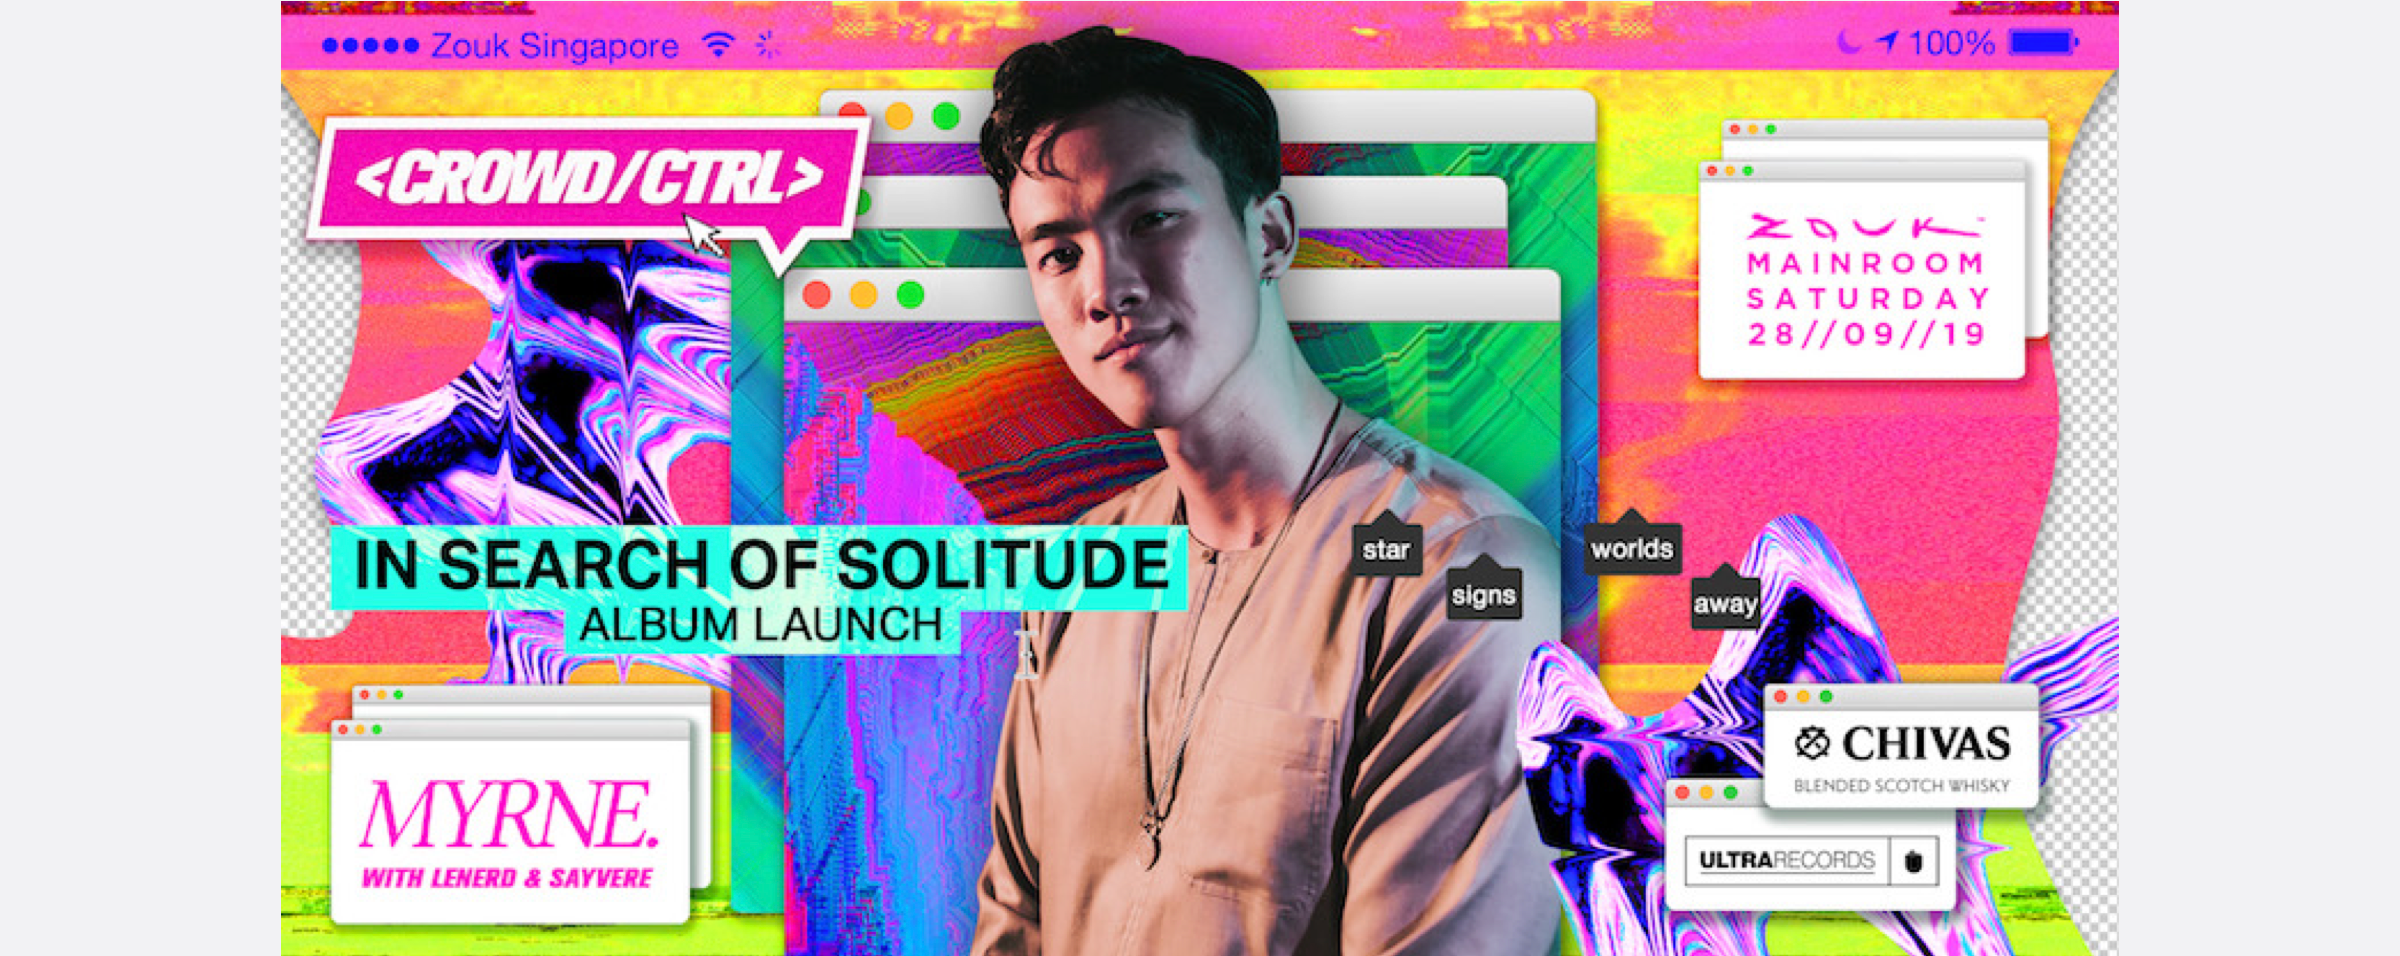 """Crowd CTRL x Ultra Records present """"In Search of Solitude"""" Album Launch Party ft. MYRNE"""